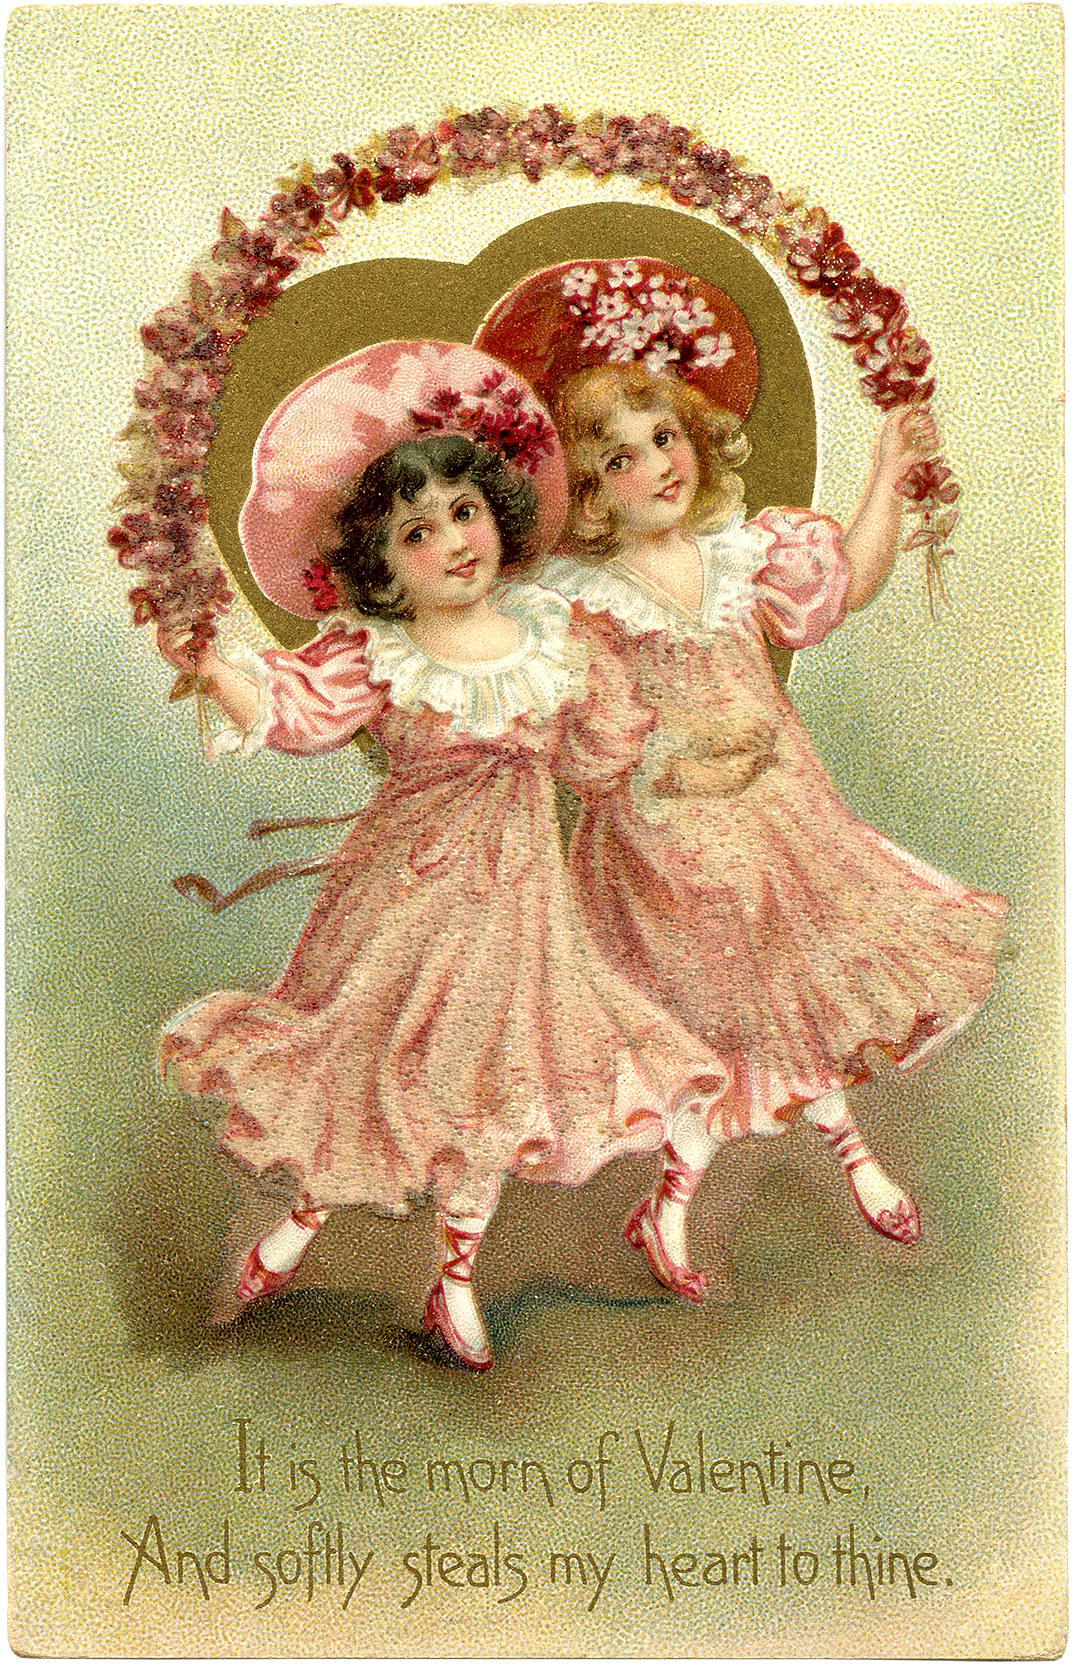 Free Vintage Valentine Image  The Graphics Fairy